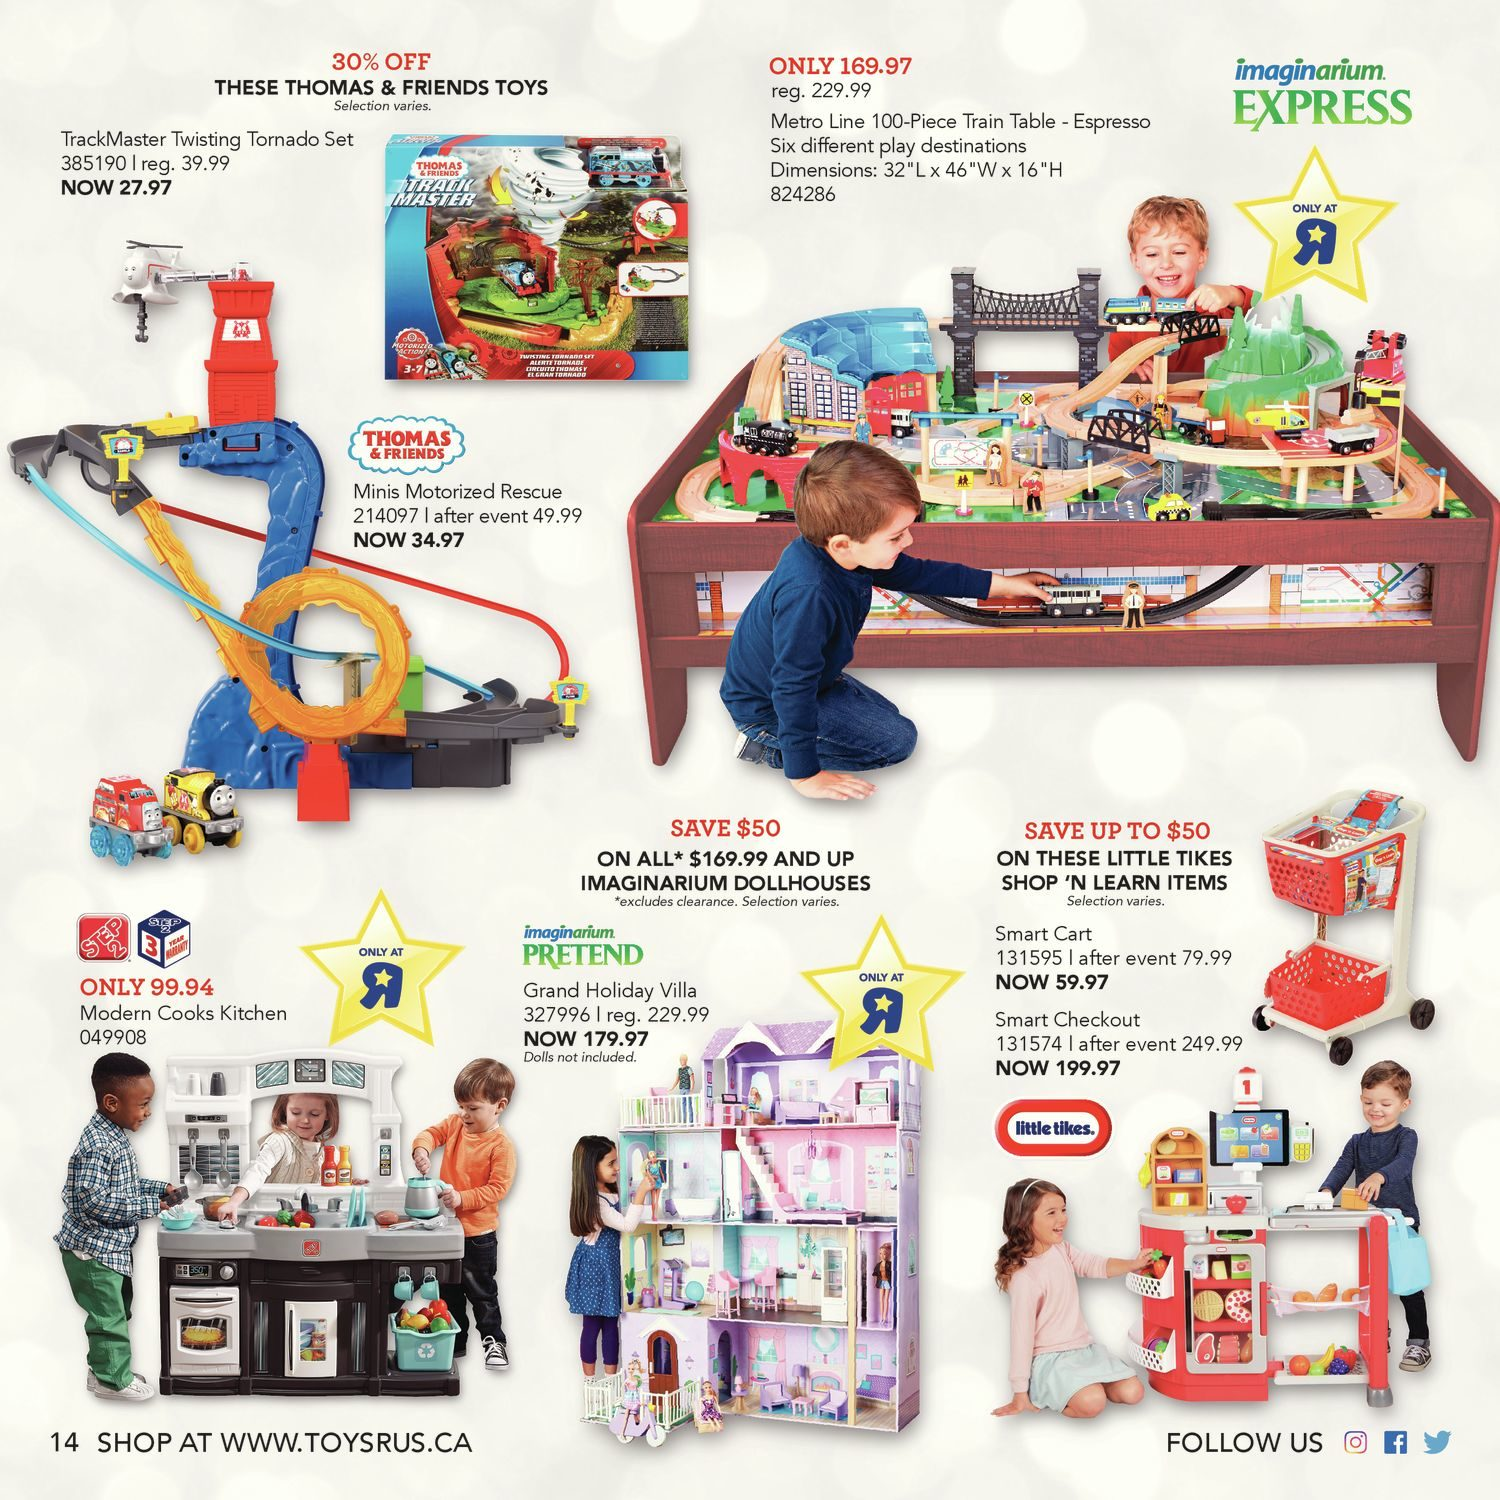 Toys R Us Weekly Flyer - Ultimate Toy Guide 2018 - Nov 2